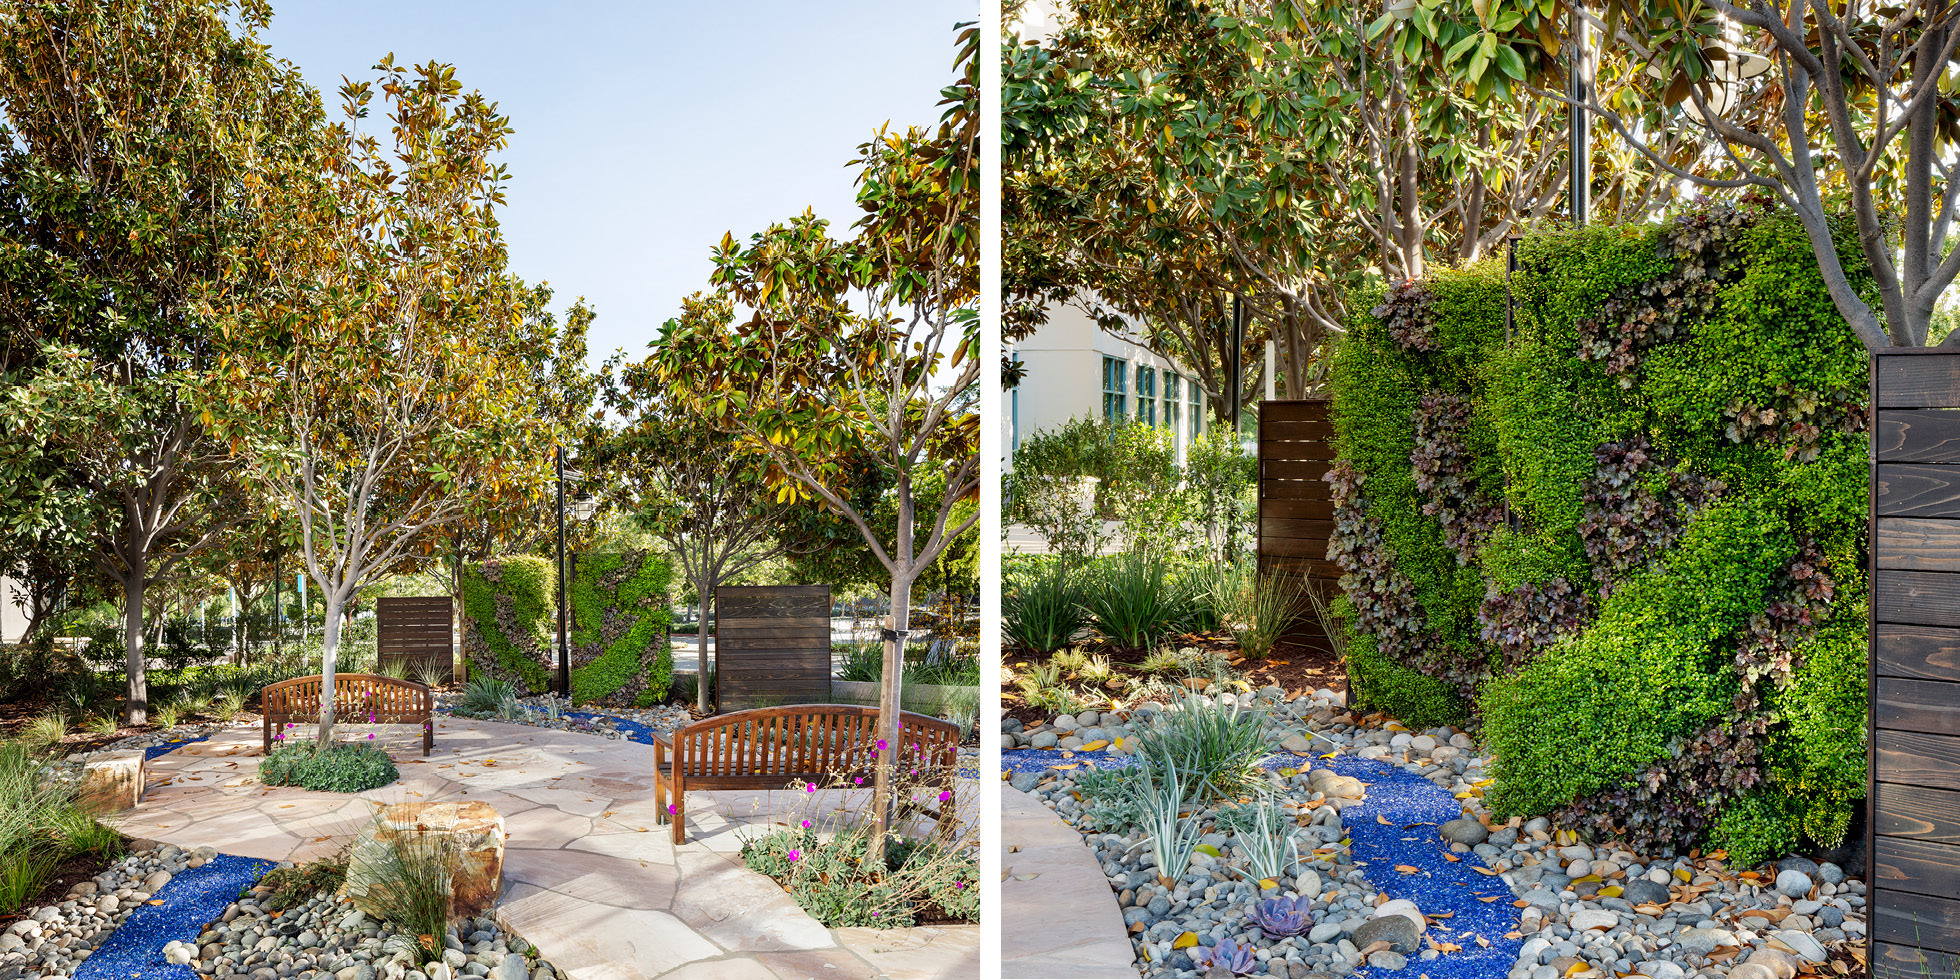 Cisco Reflection Garden Living Wall by Habitat Horticulture - View 3